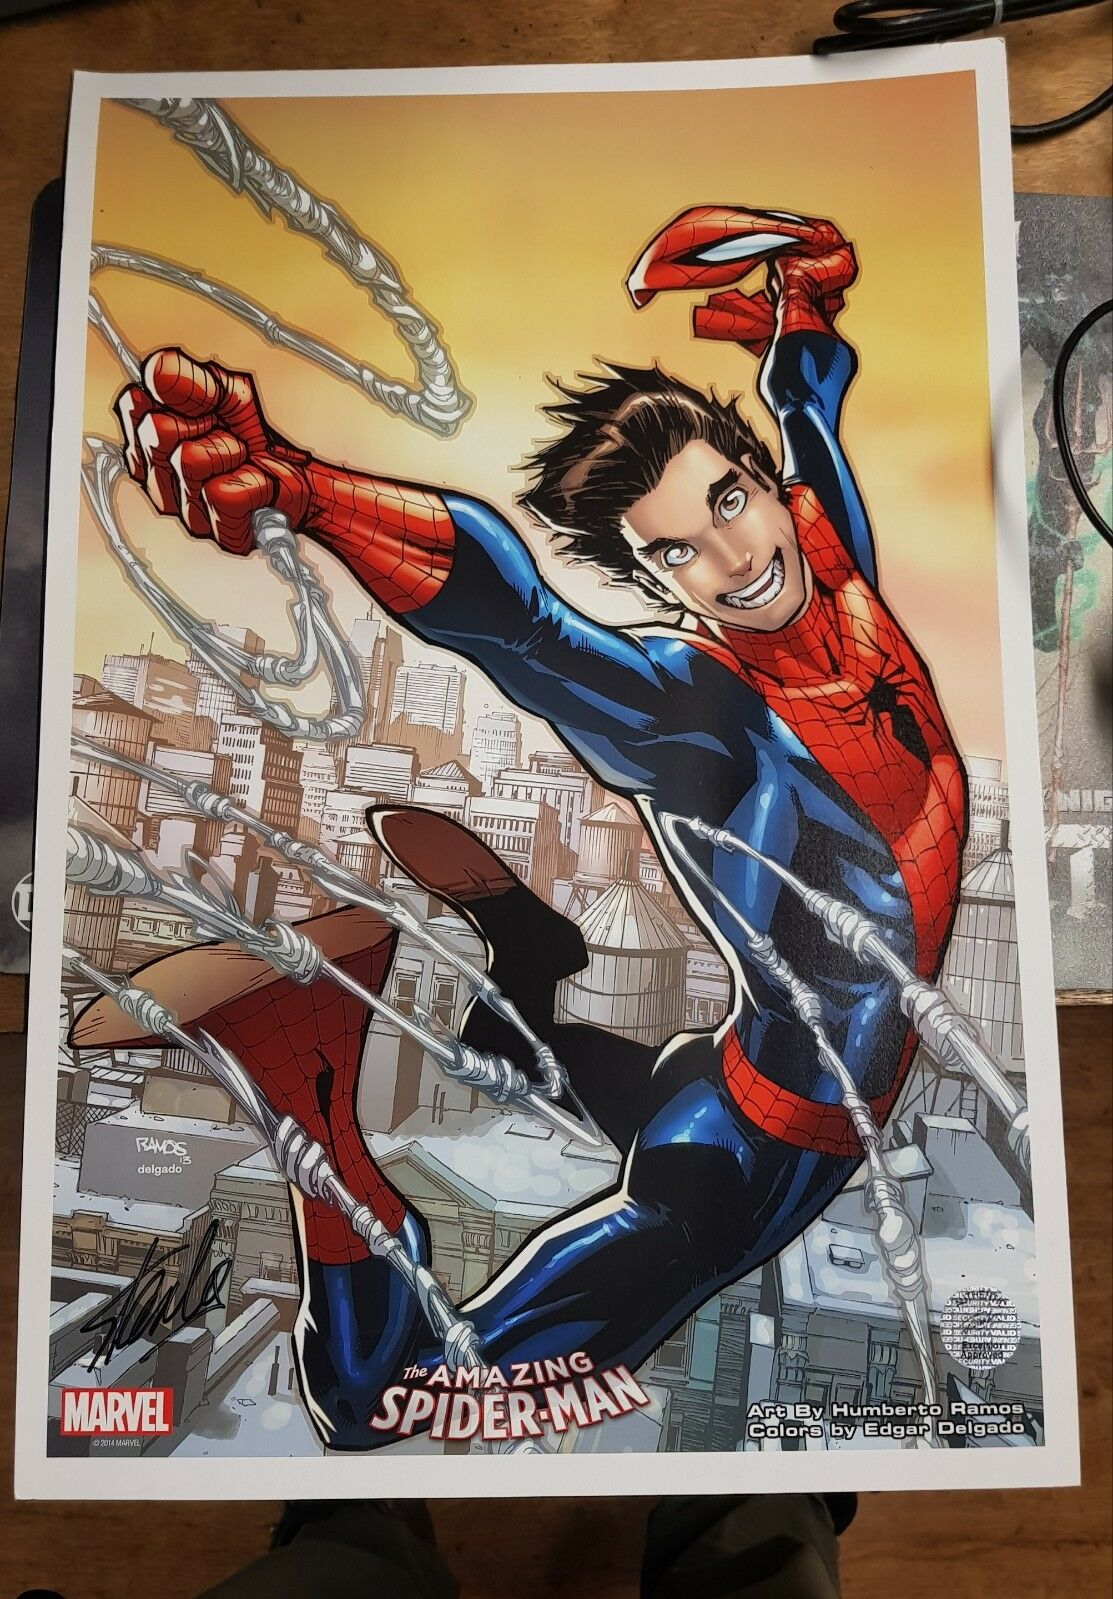 MARVEL STAN LEE SIGNED SPIDER-MAN POSTER